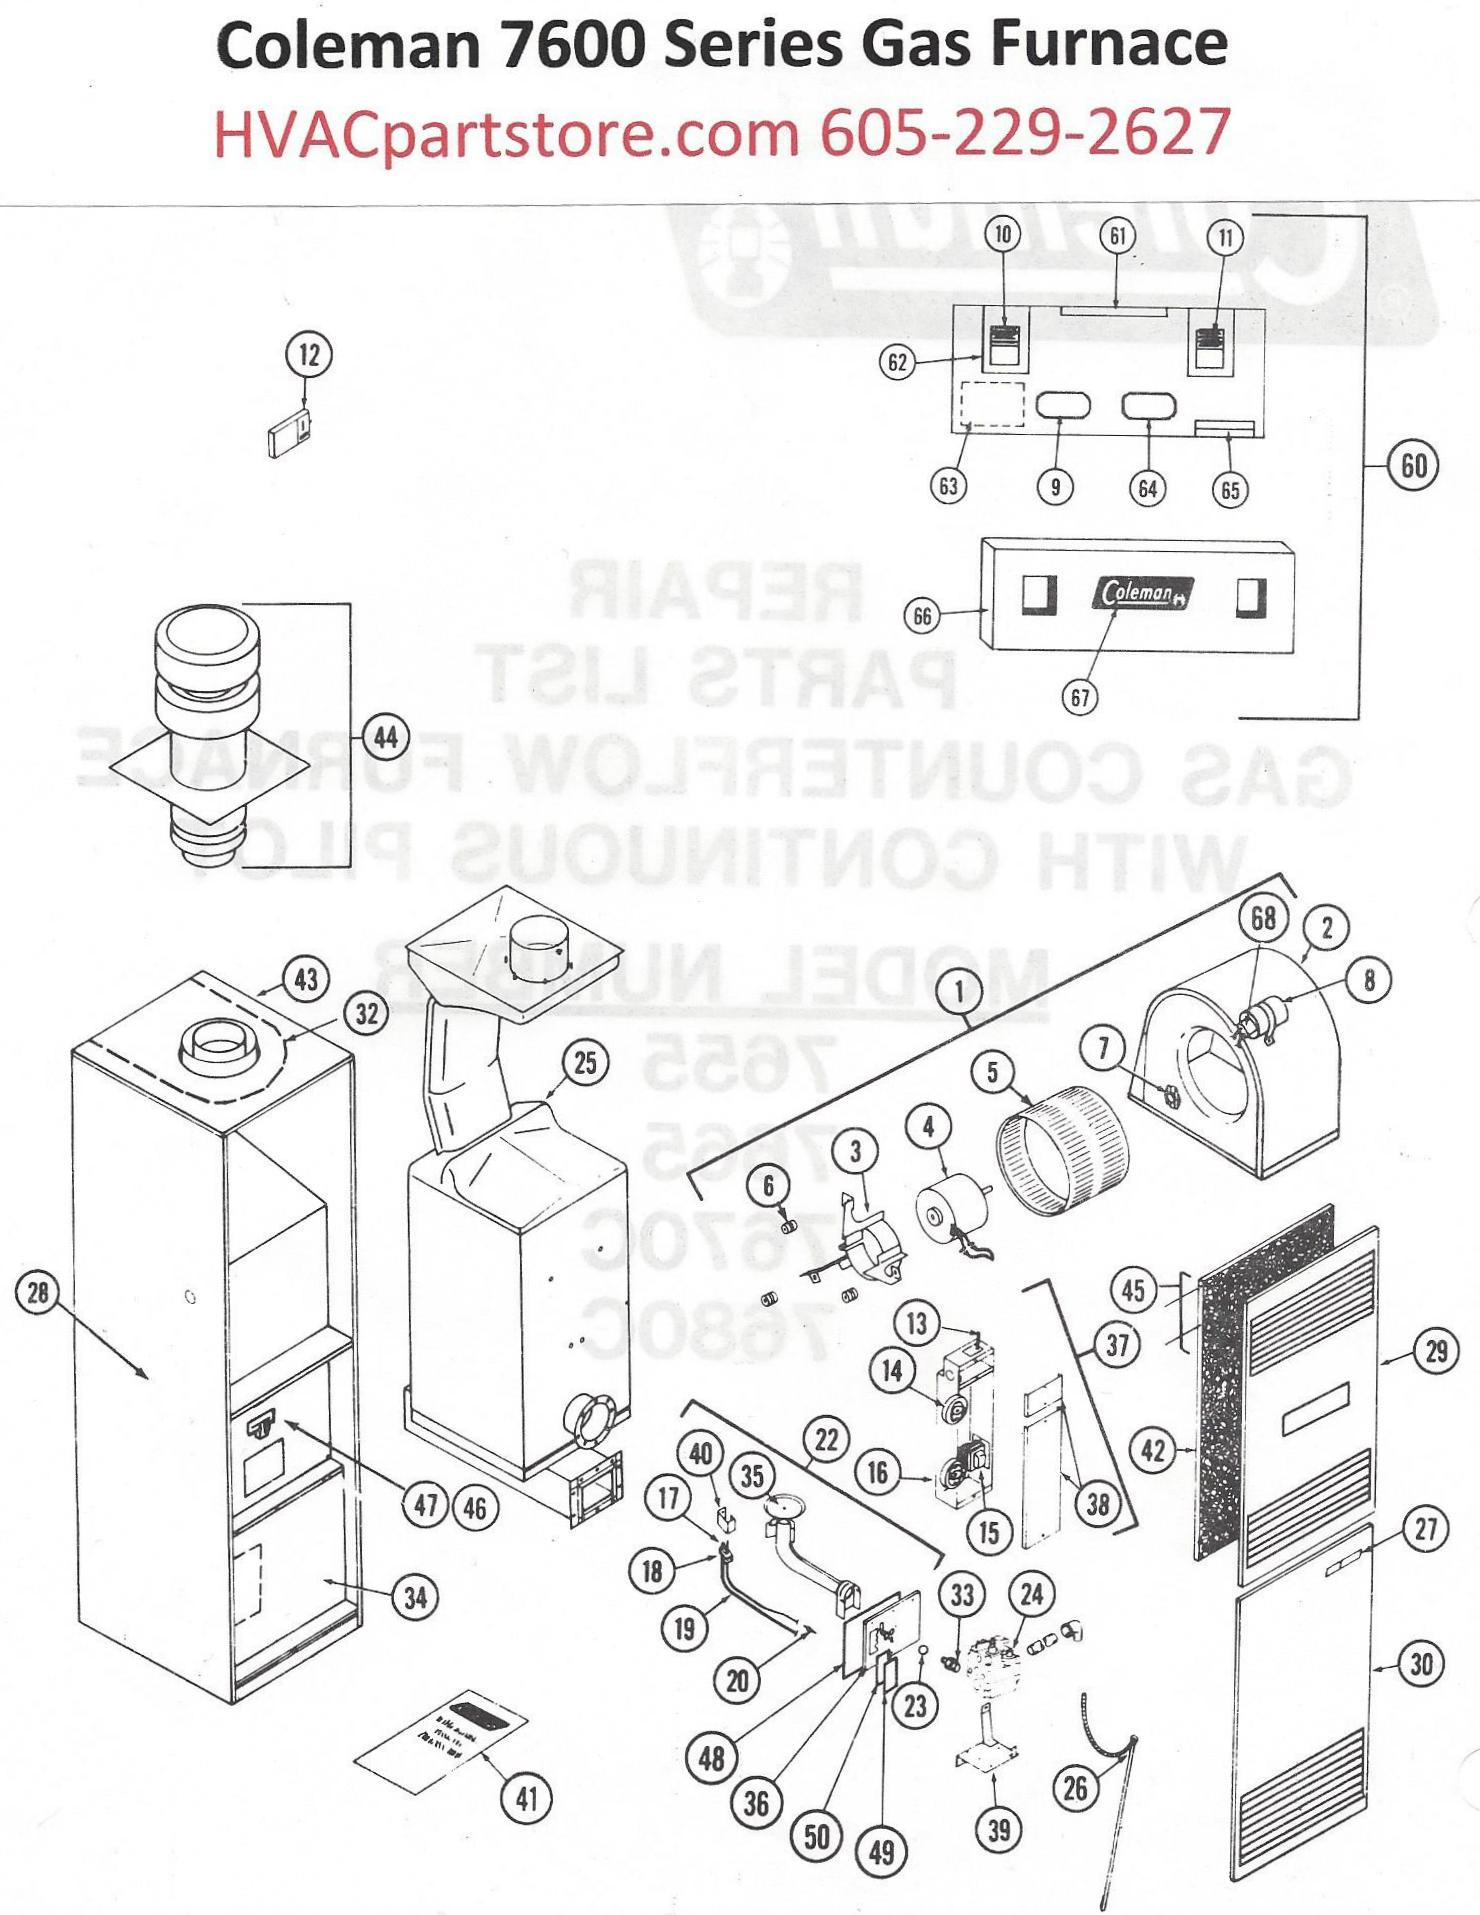 7655 856 coleman gas furnace parts tagged manual hvacpartstore click here to view a manual for the coleman 7655 856 which includes wiring diagrams